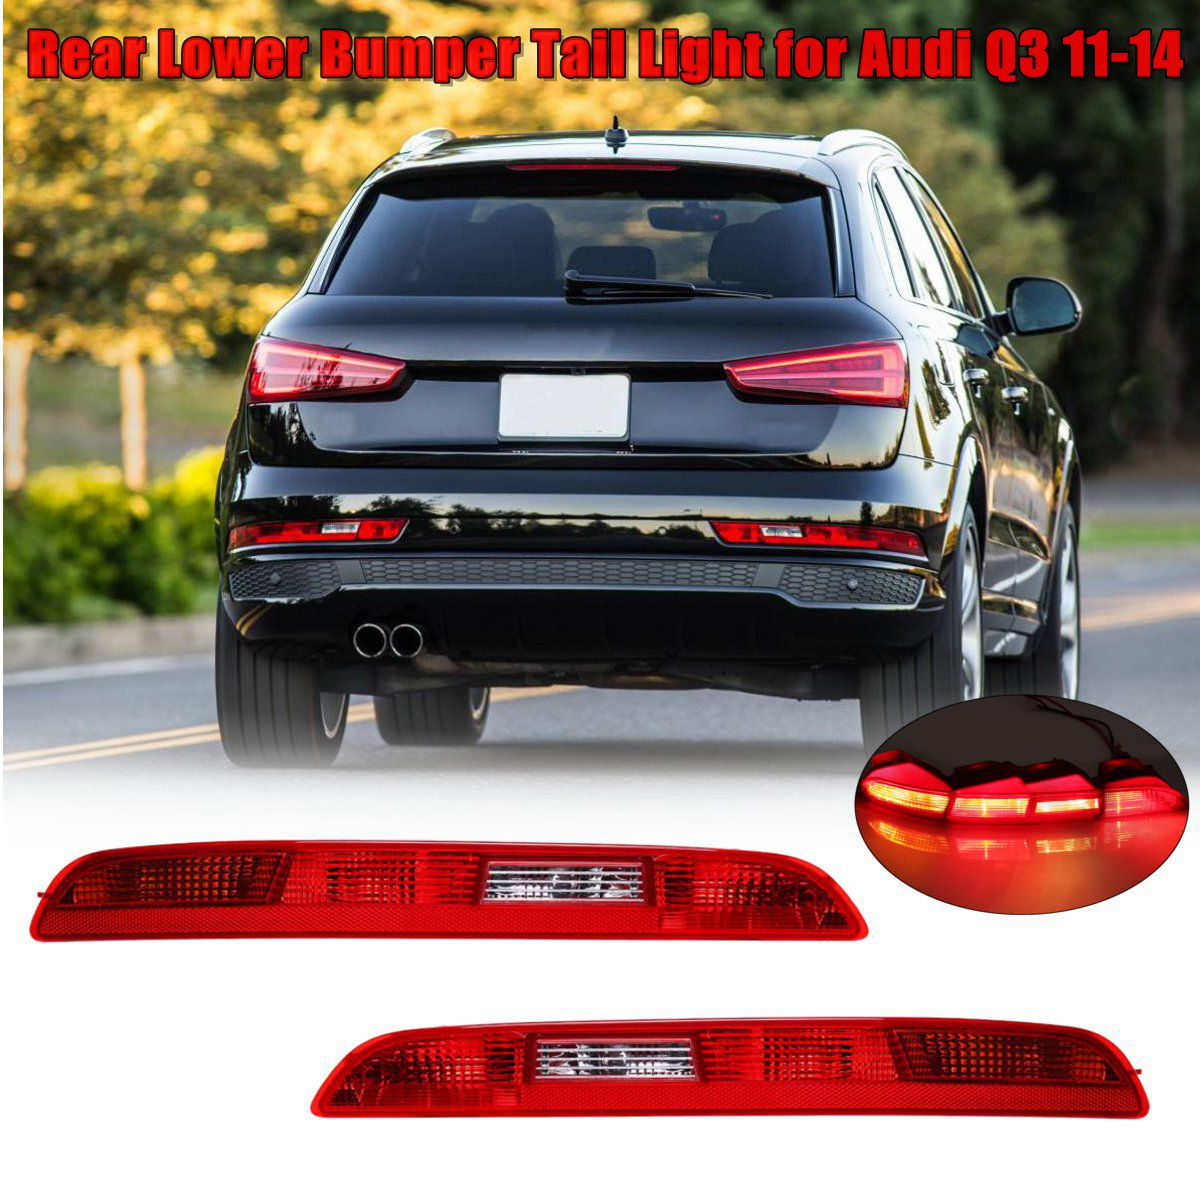 New Left/Right Car Rear Side Lower Bumper Fog Lamps Tail Light Red Reverse Brake Halogen Auto Lower For AUDI Q3 2011~2014